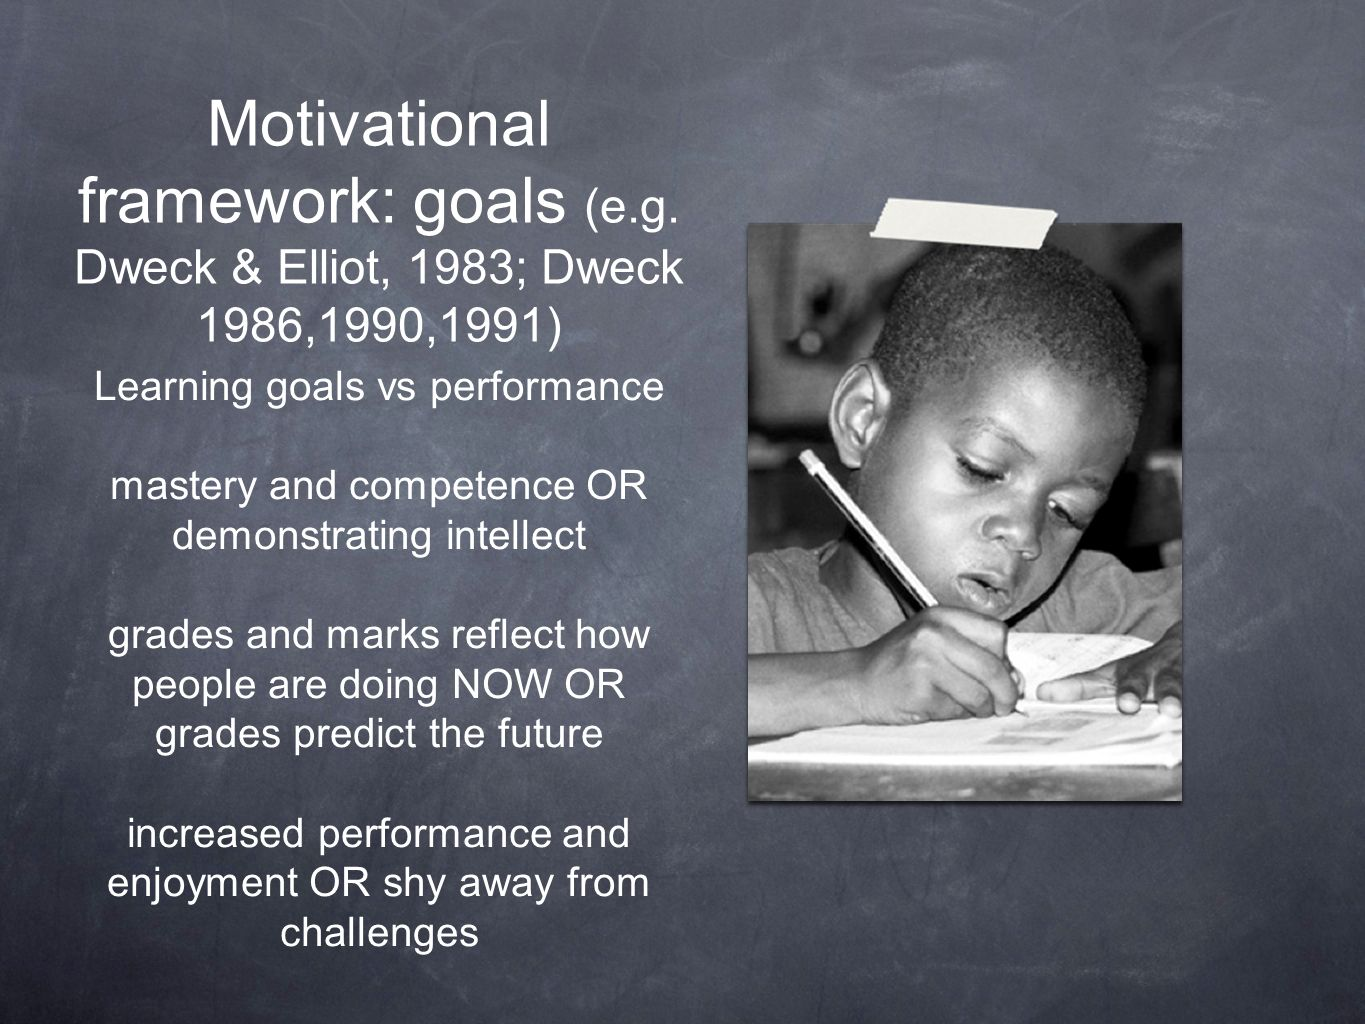 Motivational framework: goals (e.g. Dweck & Elliot, 1983; Dweck 1986,1990,1991) Learning goals vs performance mastery and competence OR demonstrating